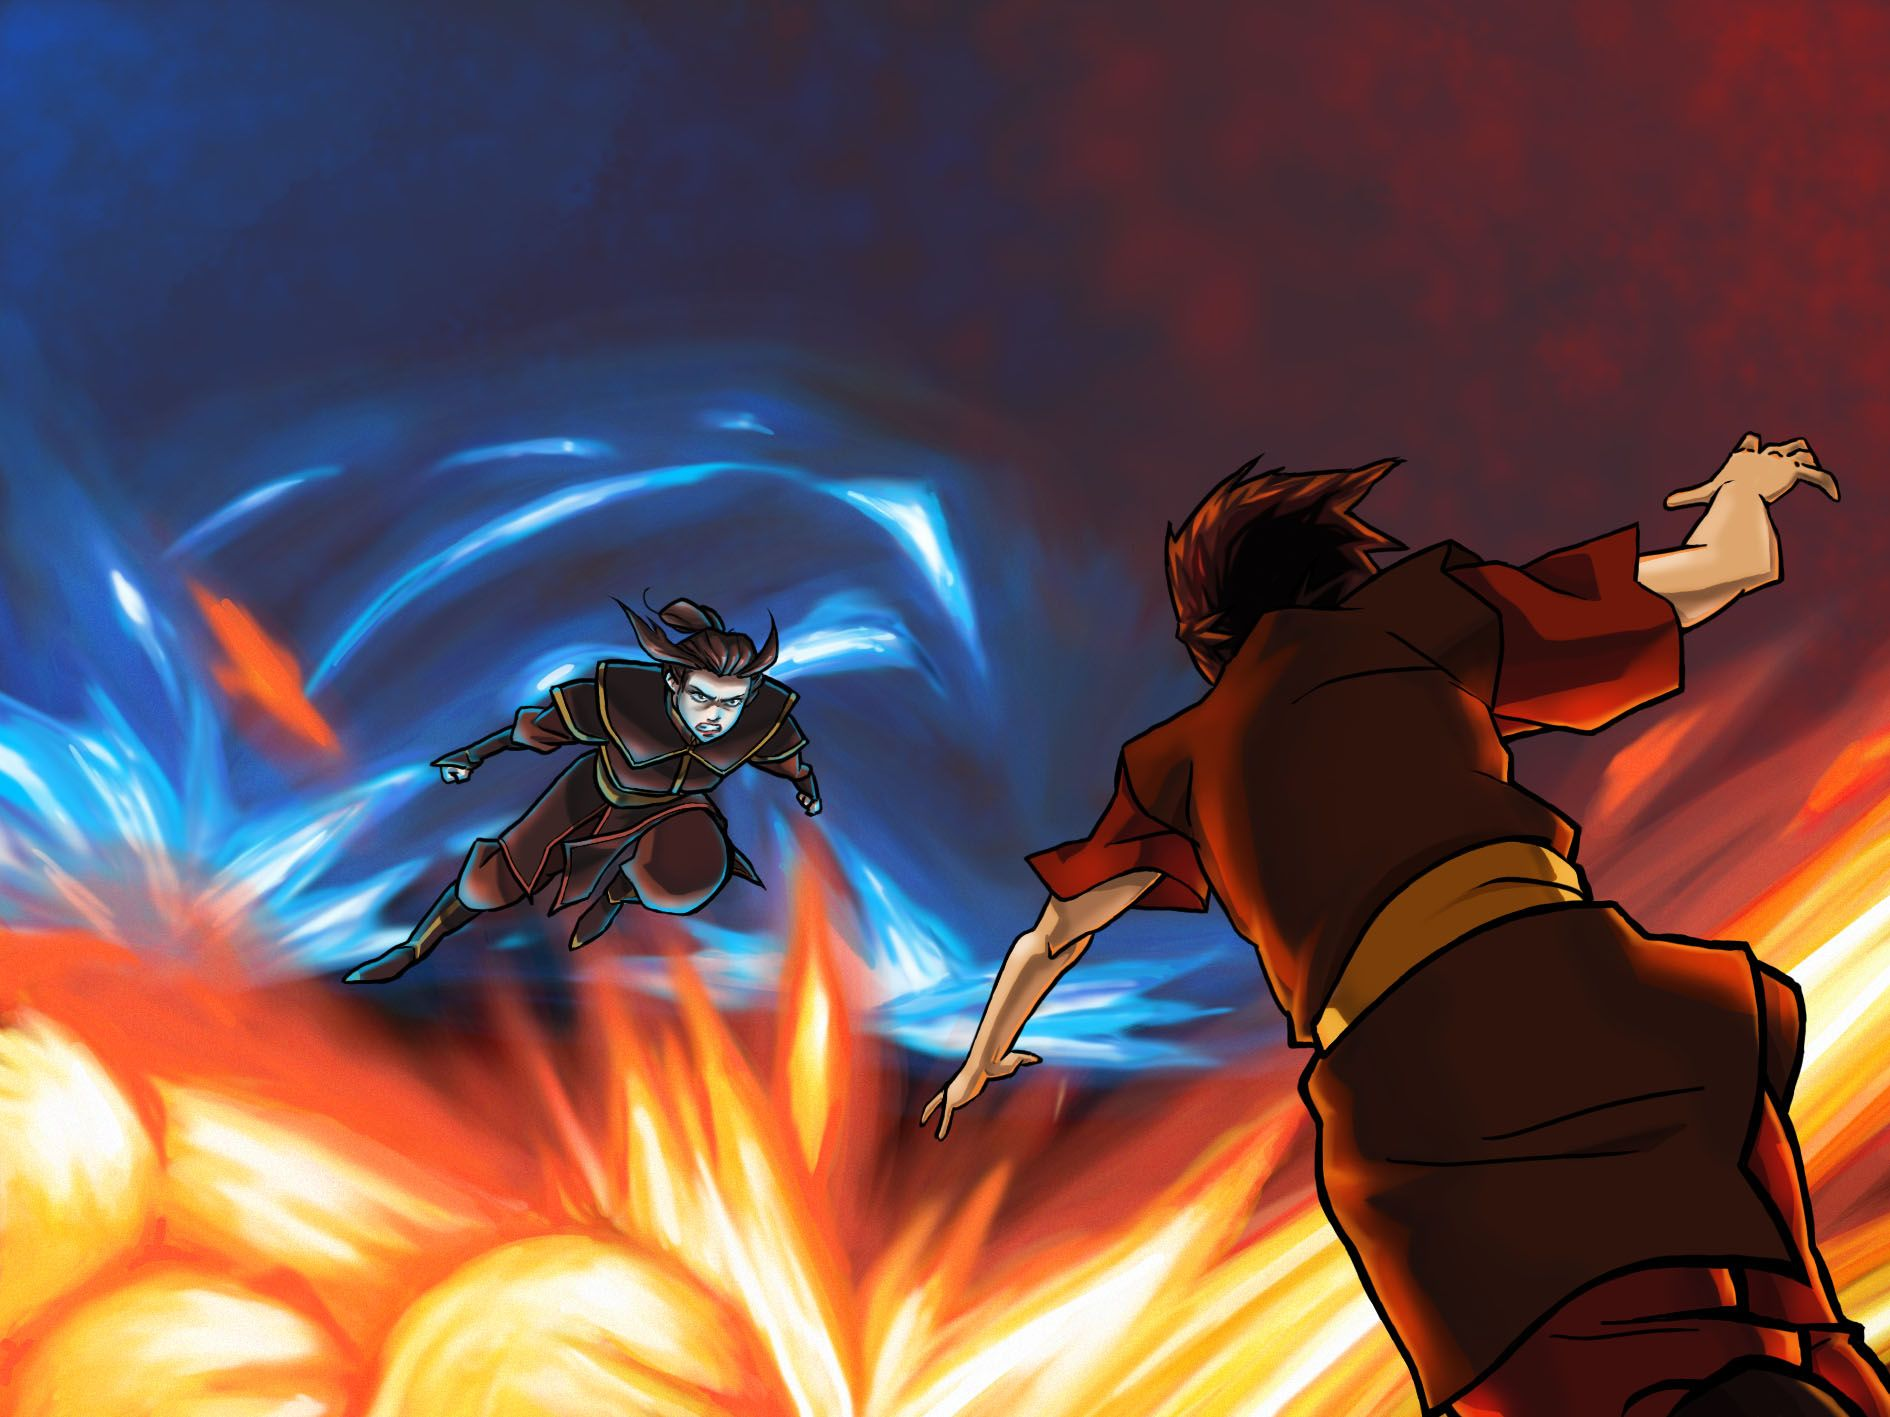 Admit it, Zuko and Azula's fight was cooler than Aang's